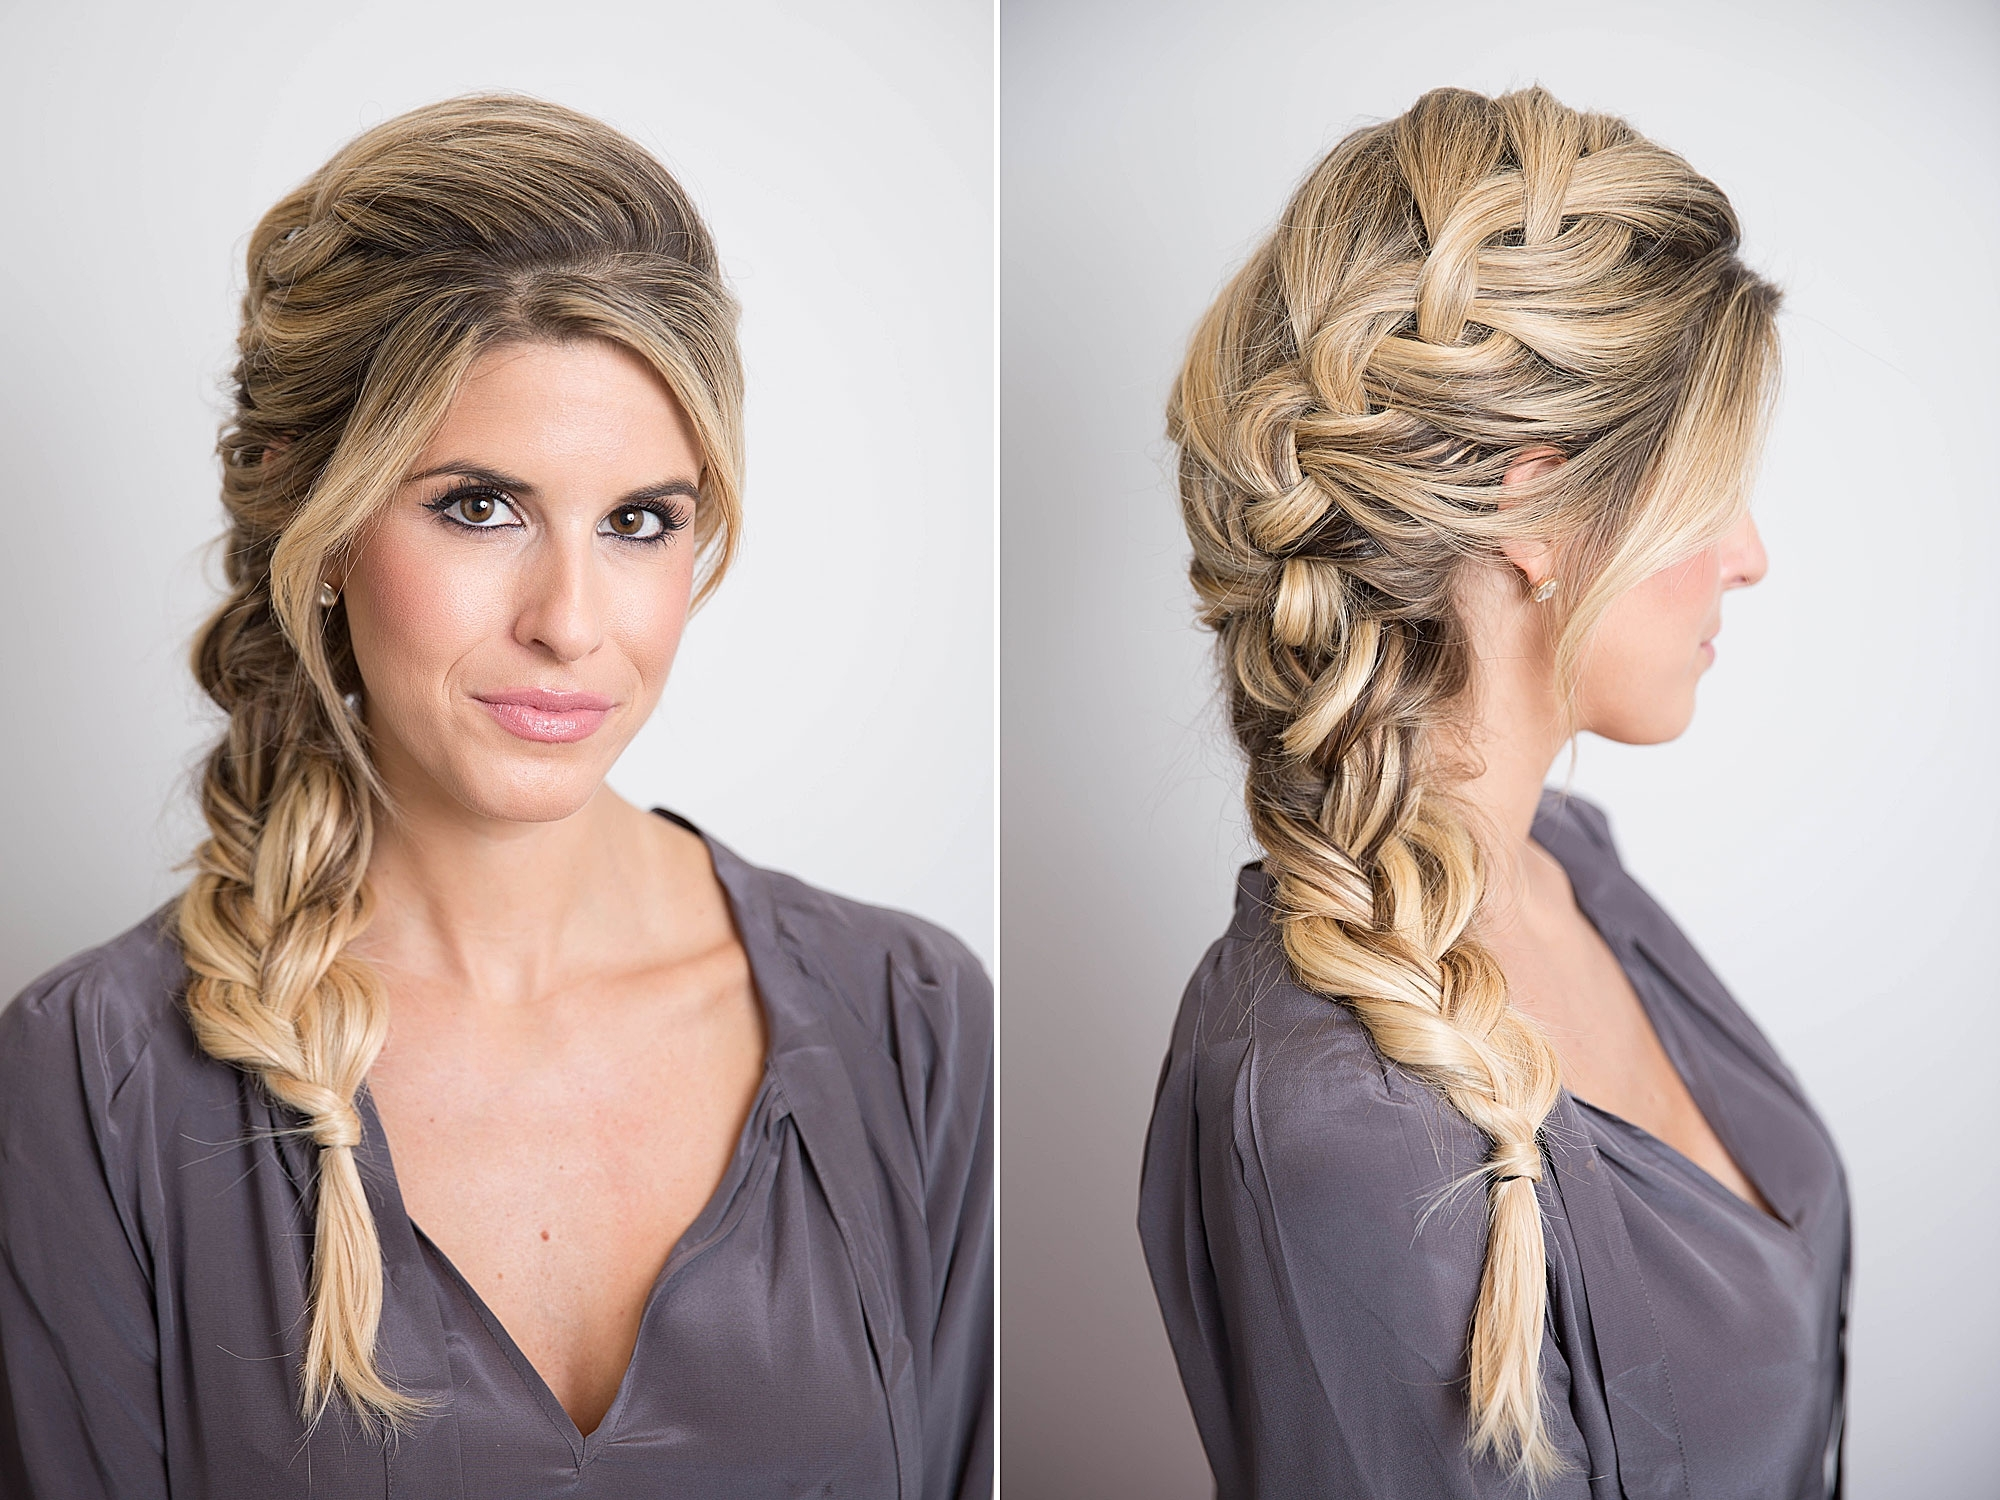 20 Best Braided Hairstyles You Should Try In 2018 – Your Glamour In Popular Top Braided Hairstyles (View 2 of 15)